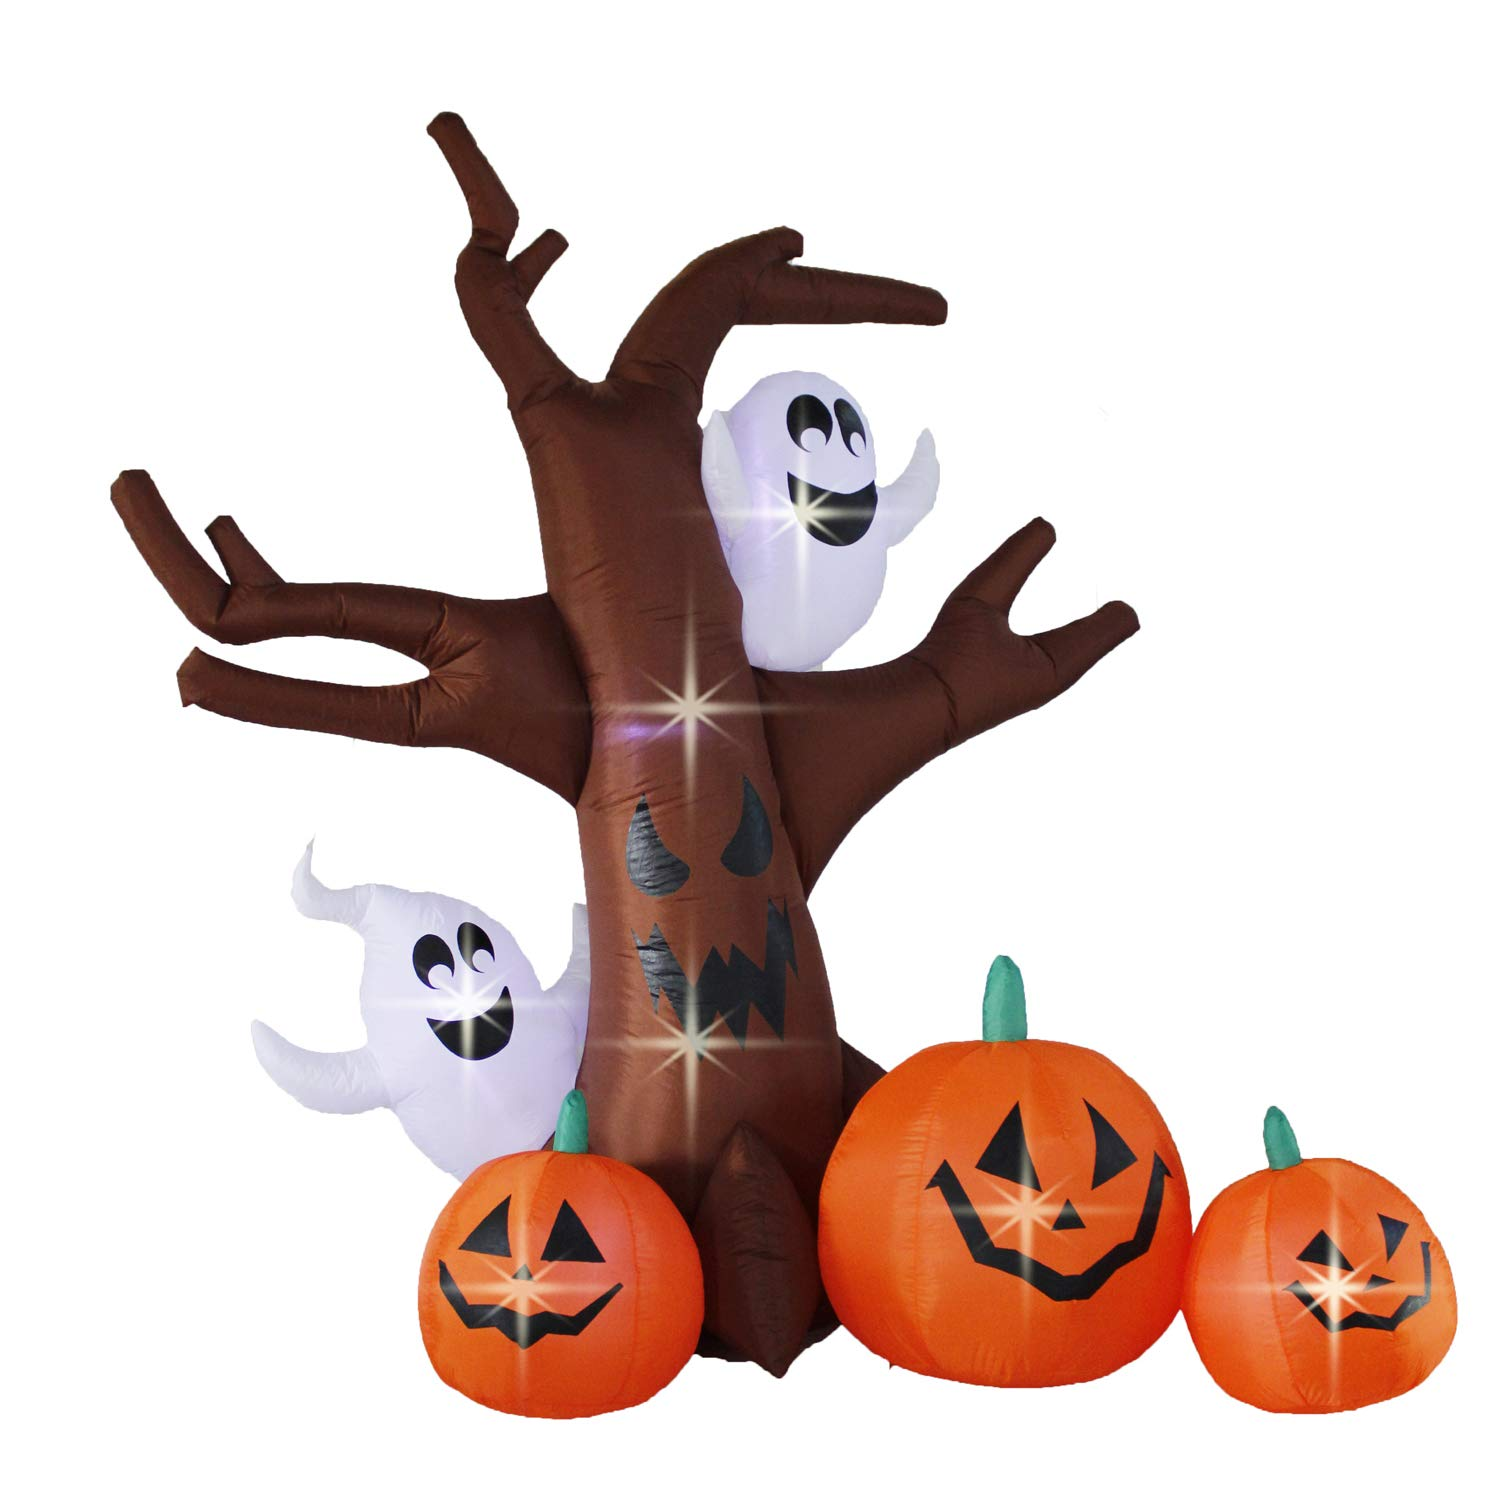 Bigjoys 8 Ft Halloween Inflatable Tree with Ghost Pumpkin Decoration for Indoor Outdoor Home Yard Party